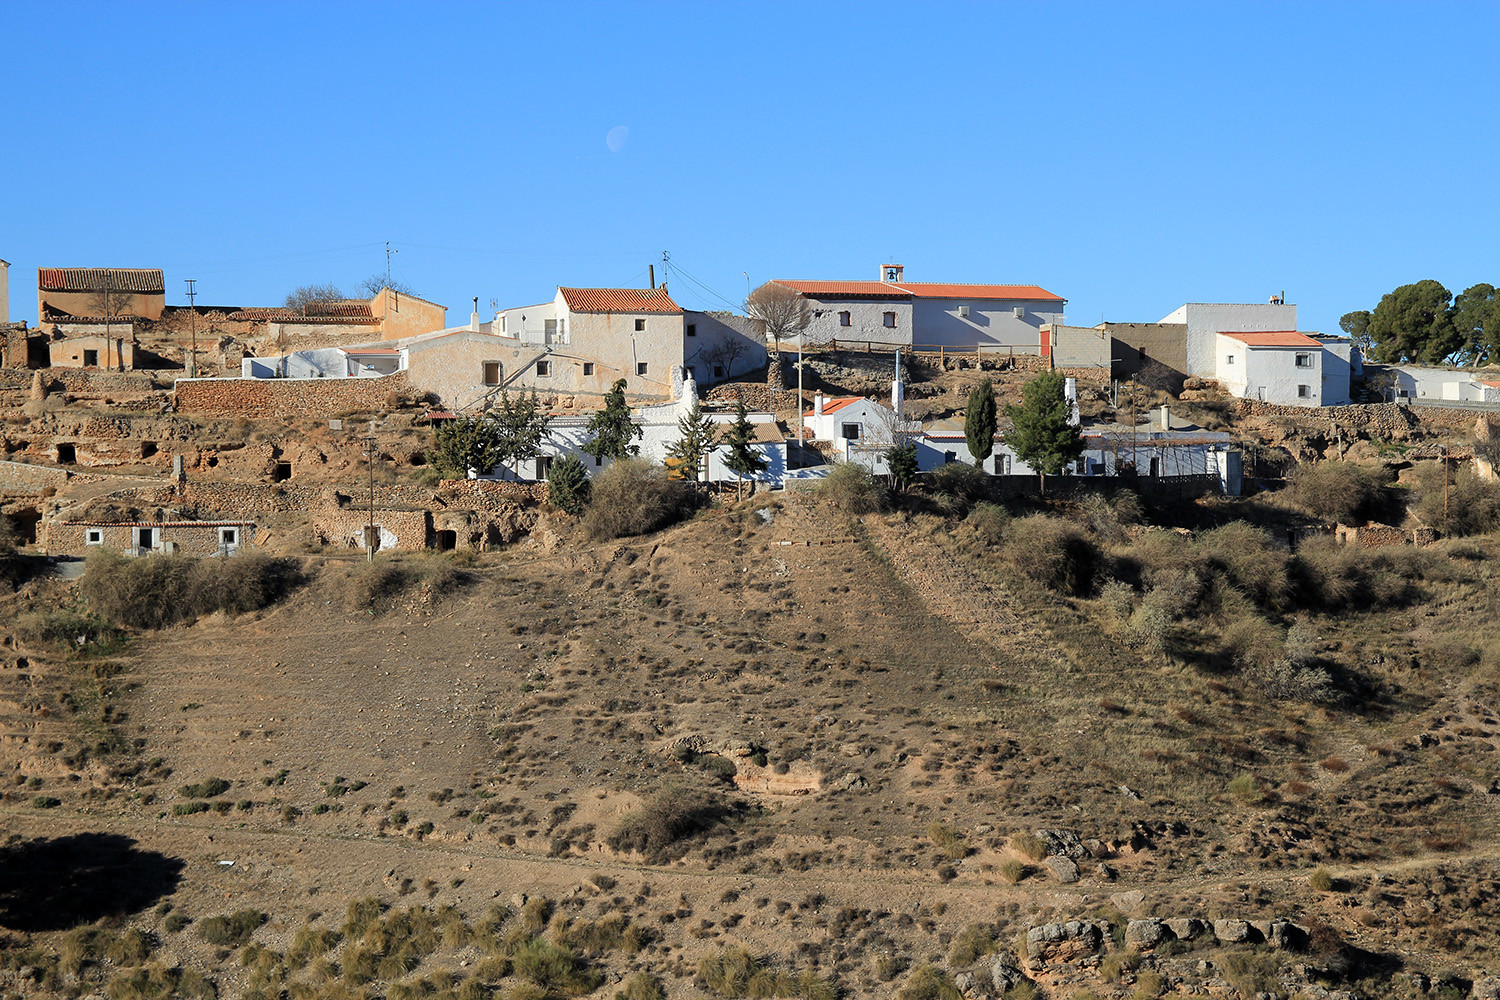 The view from the cave houses